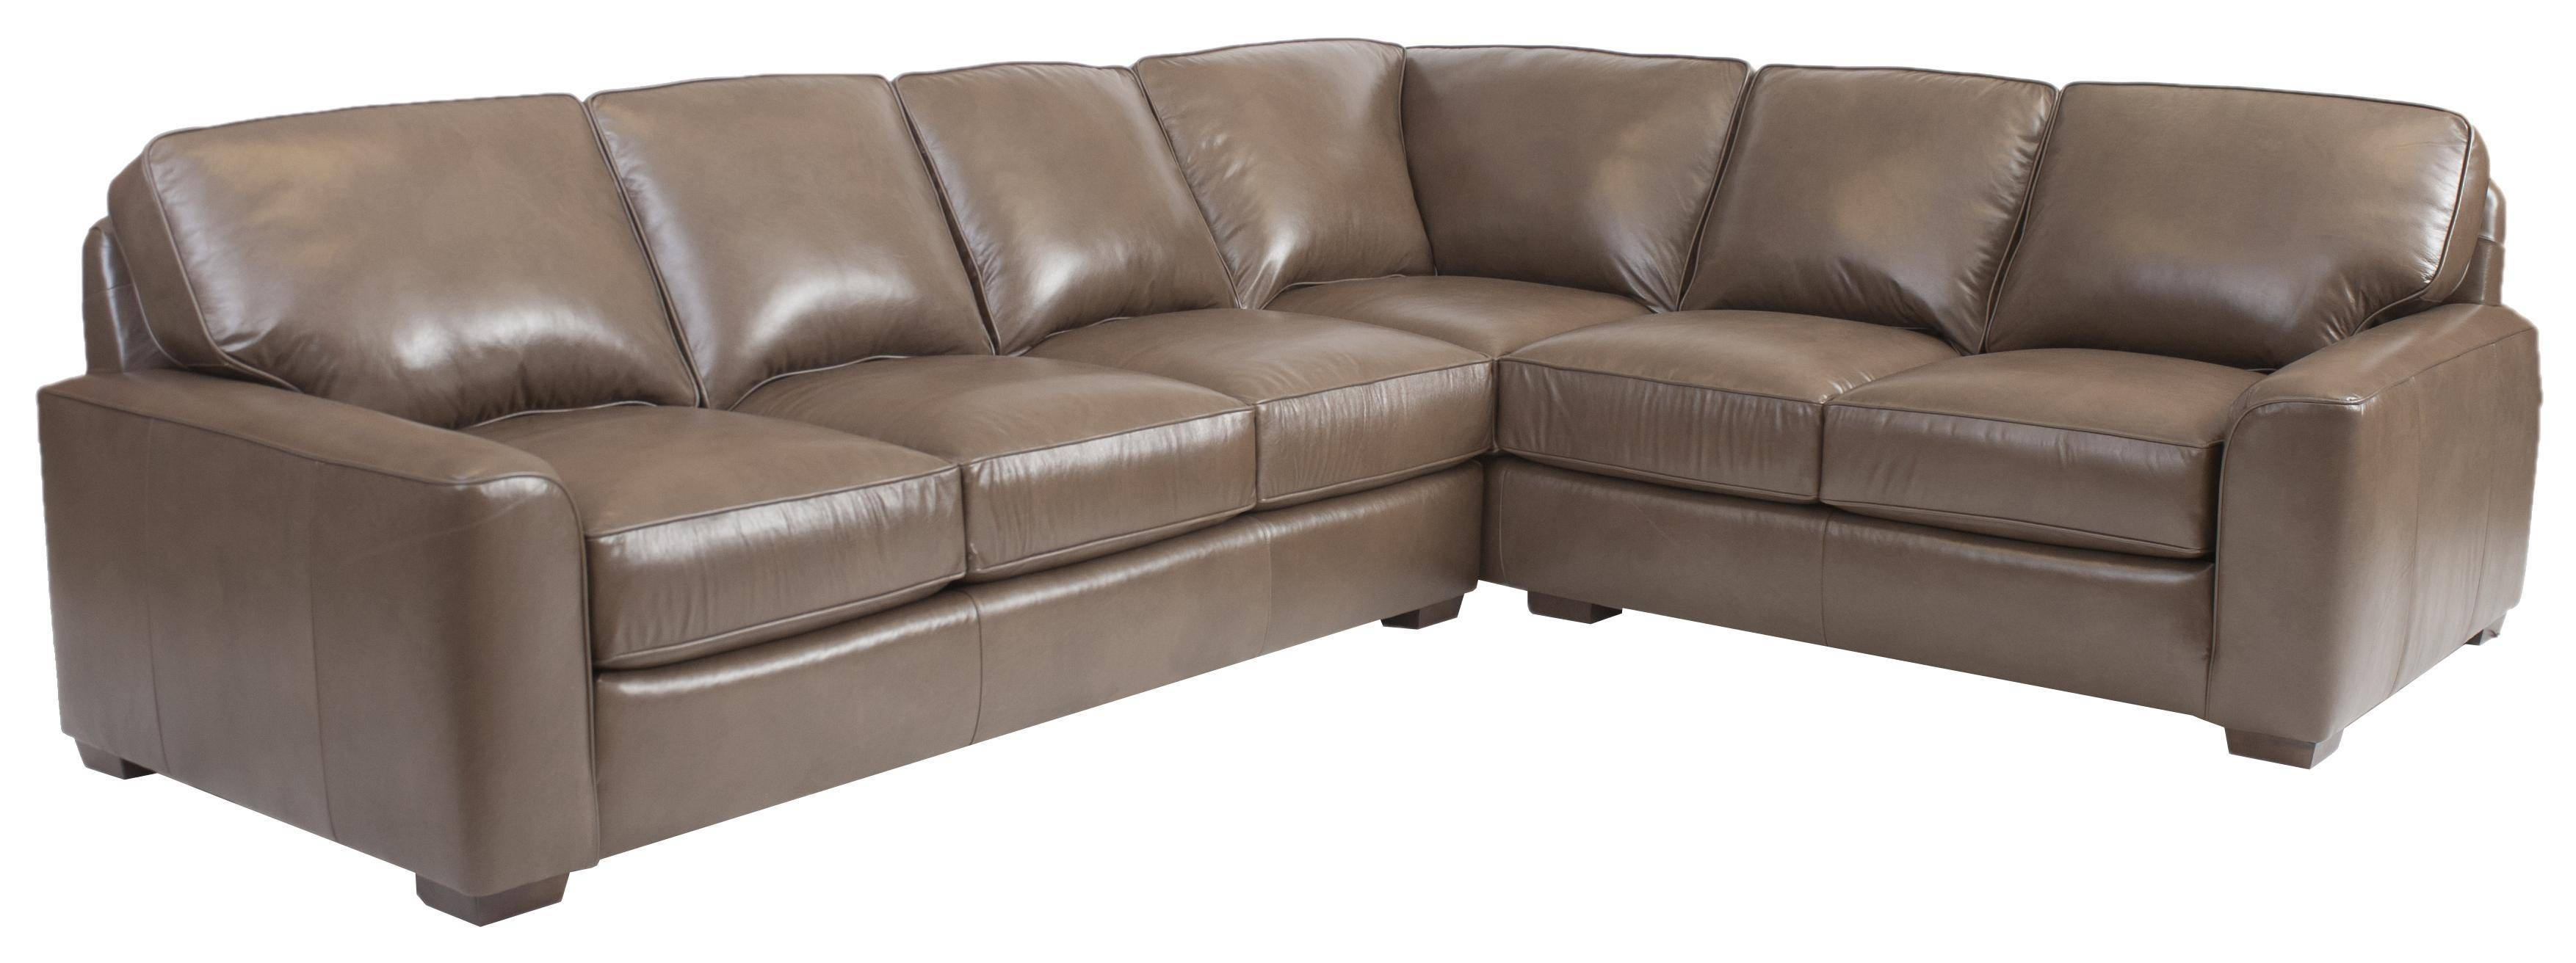 Furniture: Interesting Living Room Interior Using Large Sectional intended for Sectional Sofa With Large Ottoman (Image 8 of 30)